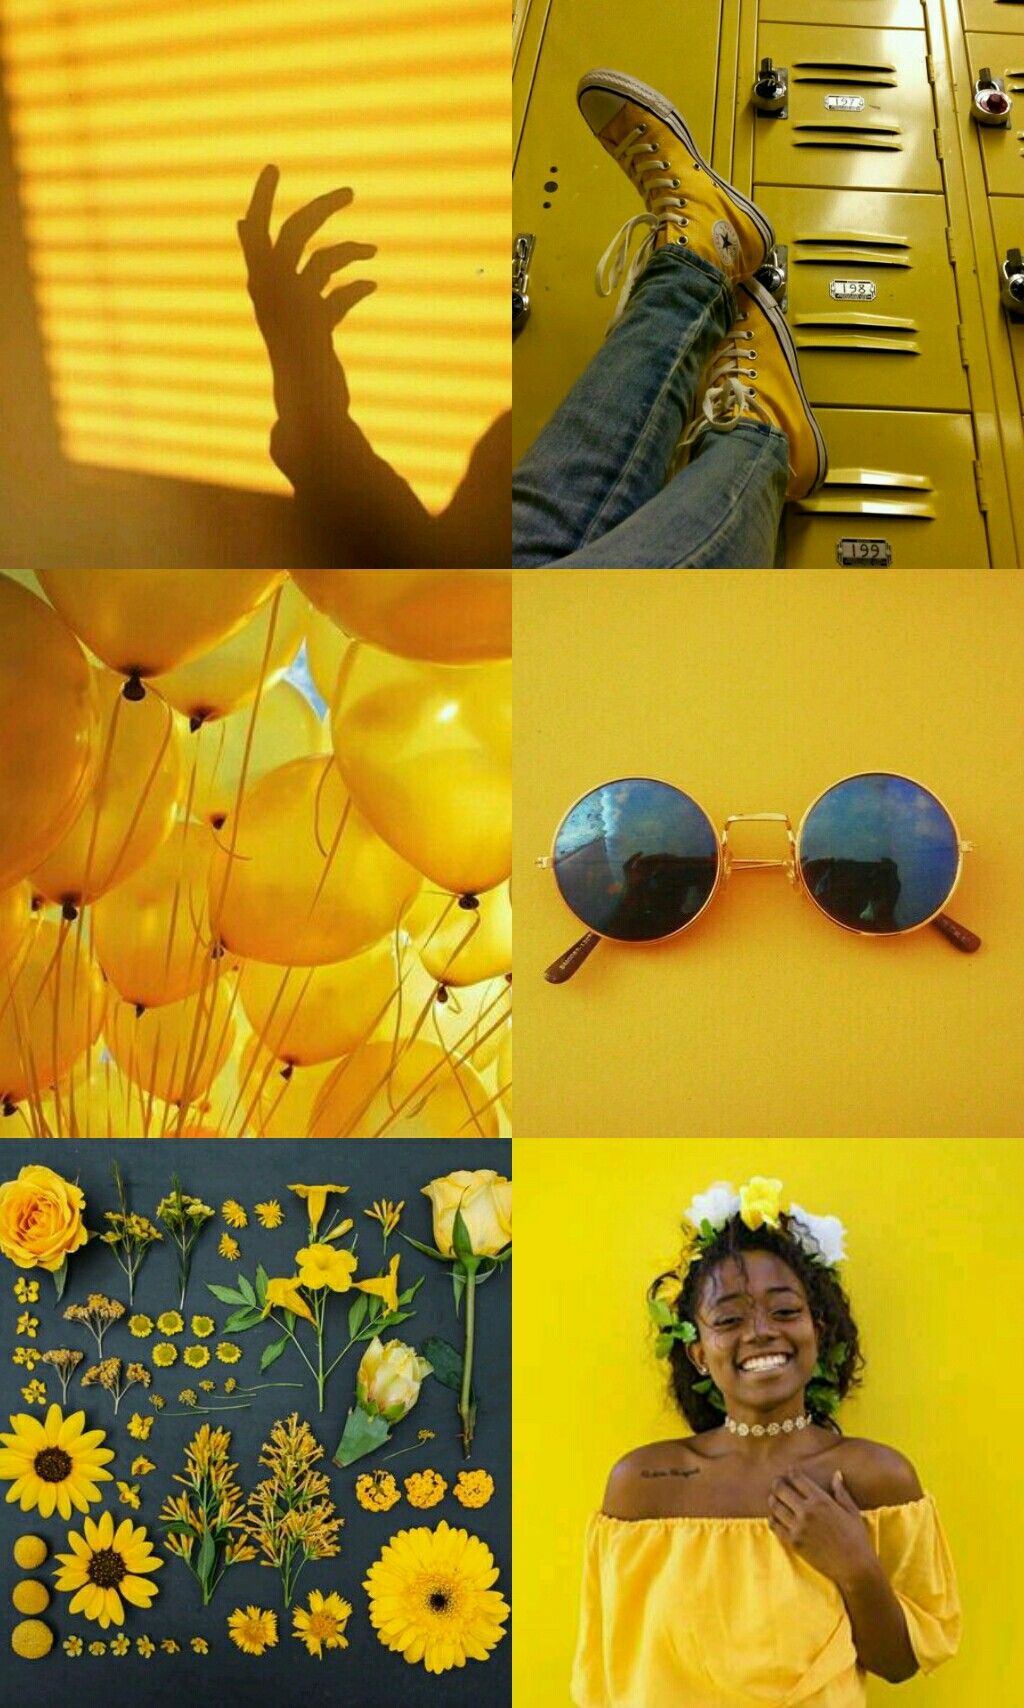 Yellow Aesthetic | Aesthetic Collage - Colors (Pinterest ... Vintage Pastel Photography Background